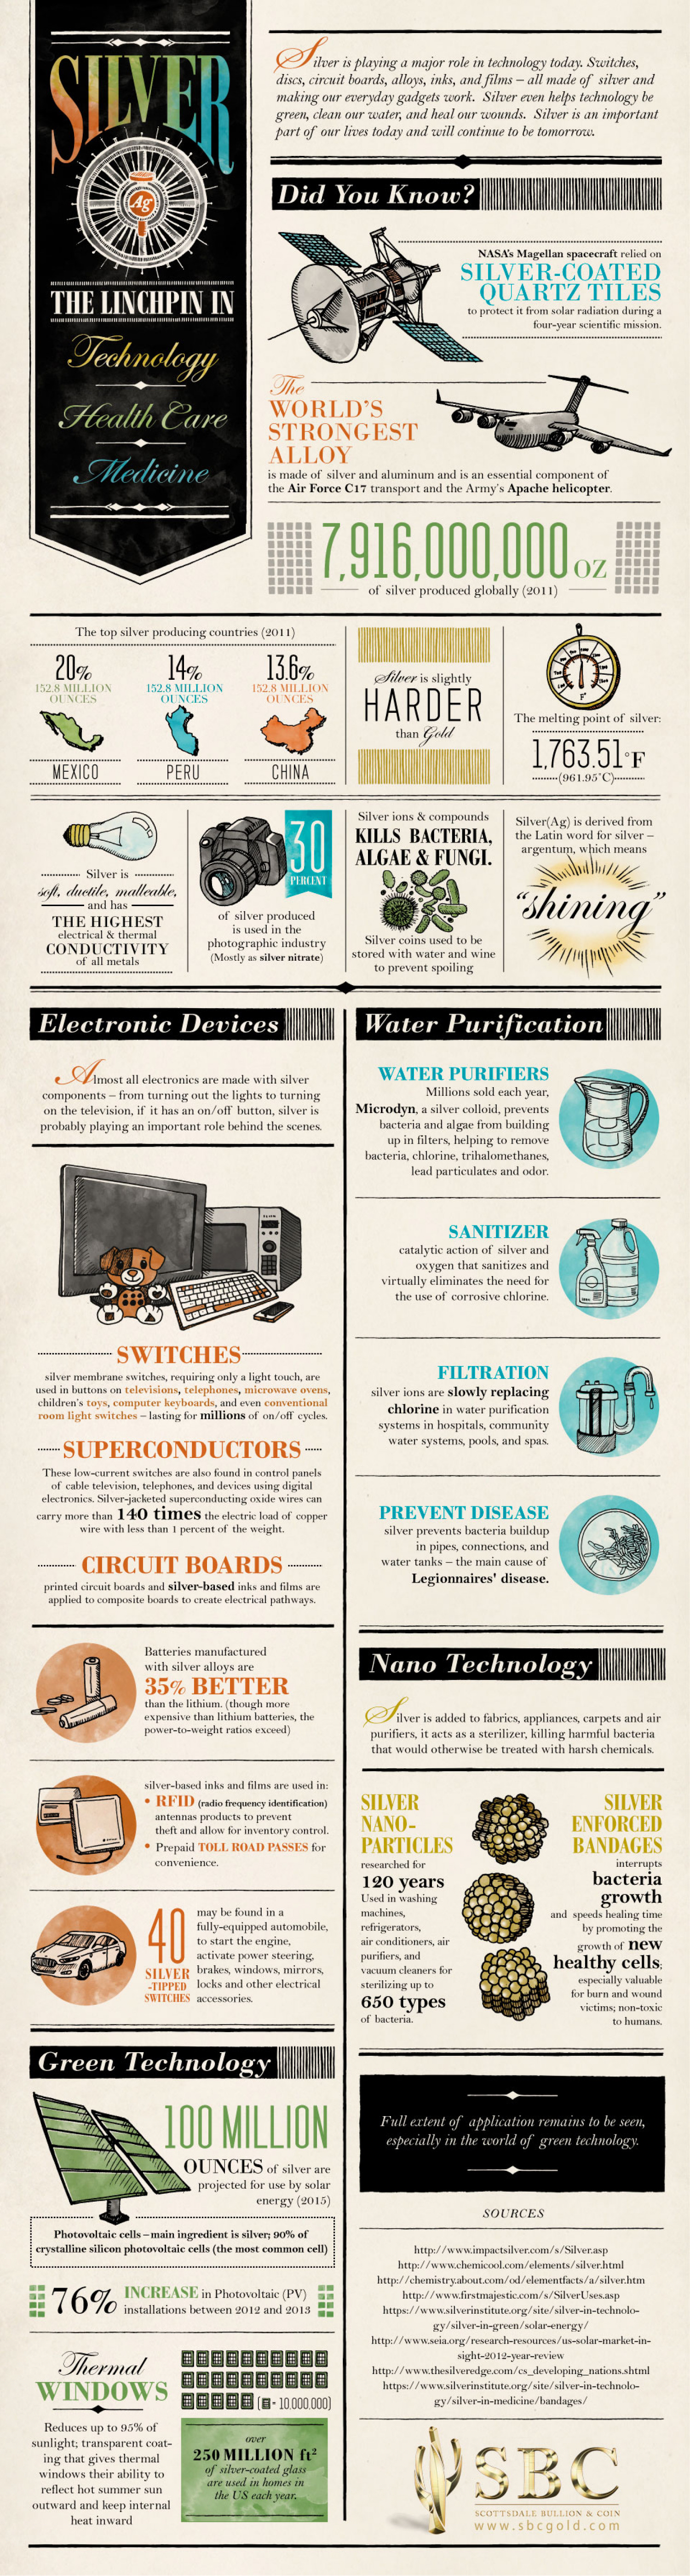 Little-Known Facts About The Importance of Silver in Technology Infographic